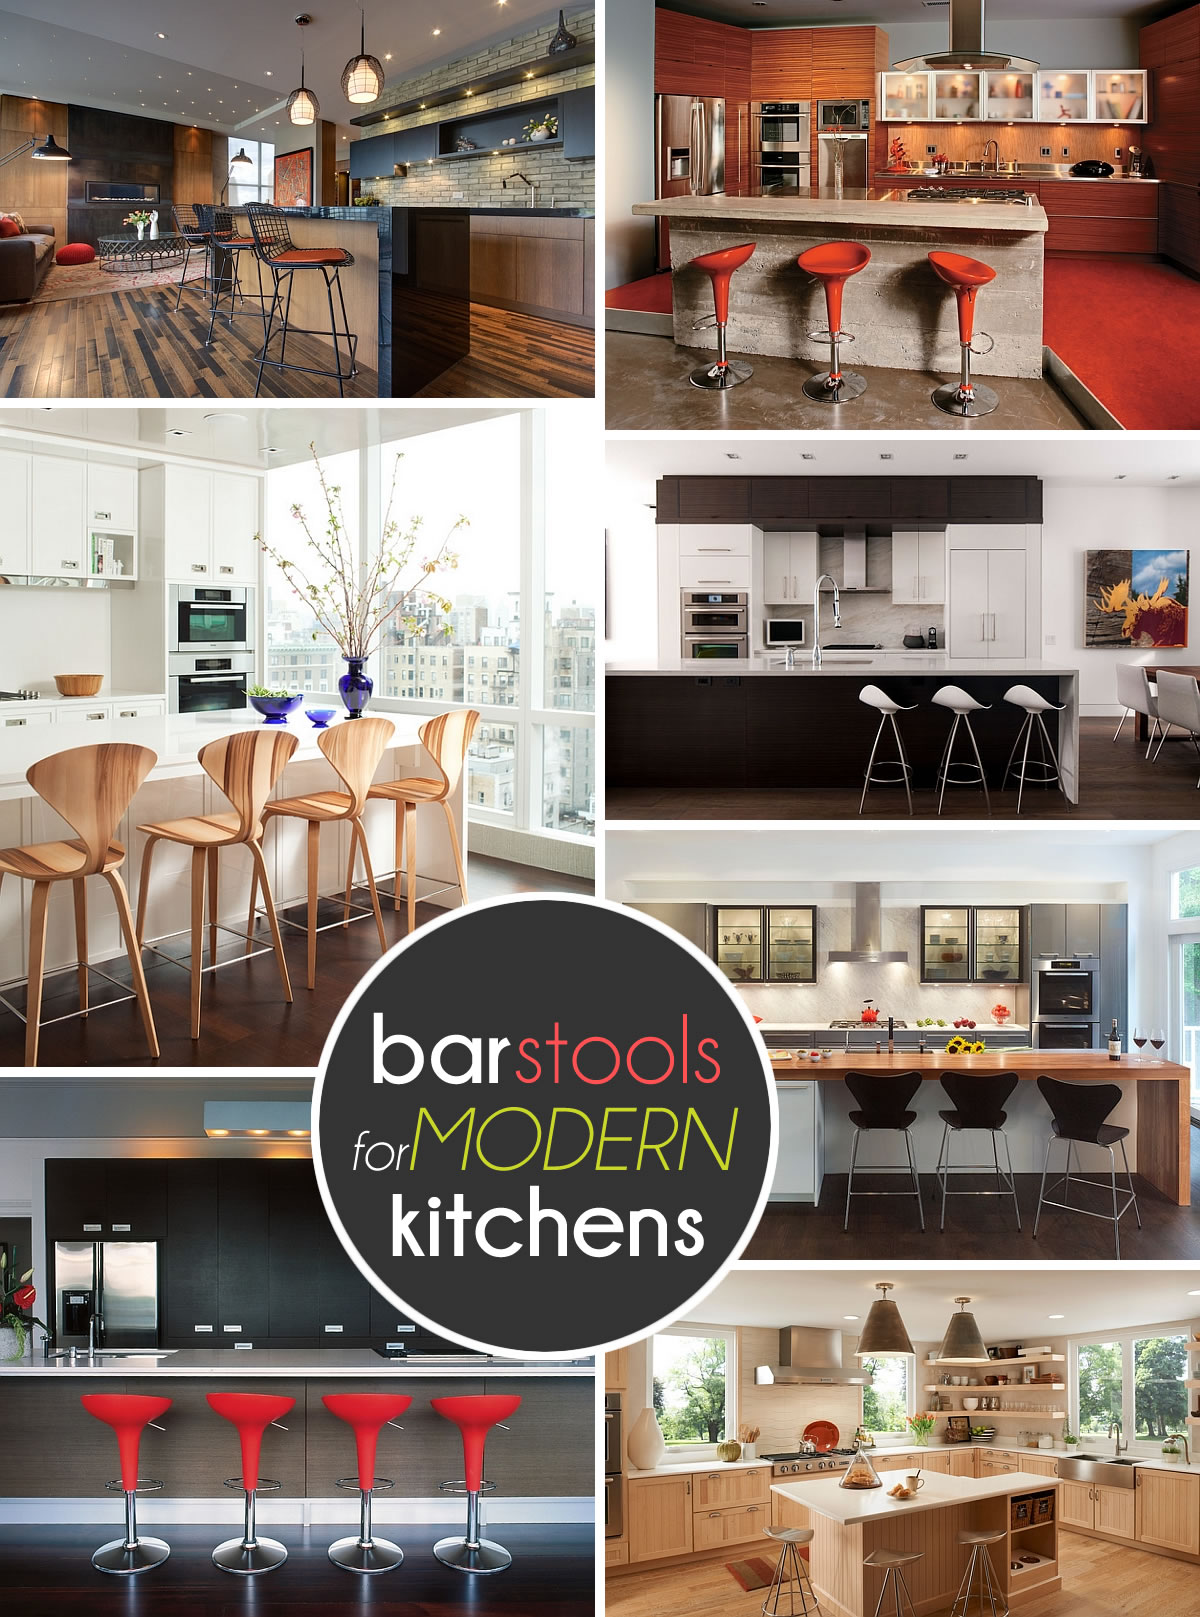 Tremendous 10 Trendy Bar And Counter Stools To Complete Your Modern Kitchen Caraccident5 Cool Chair Designs And Ideas Caraccident5Info